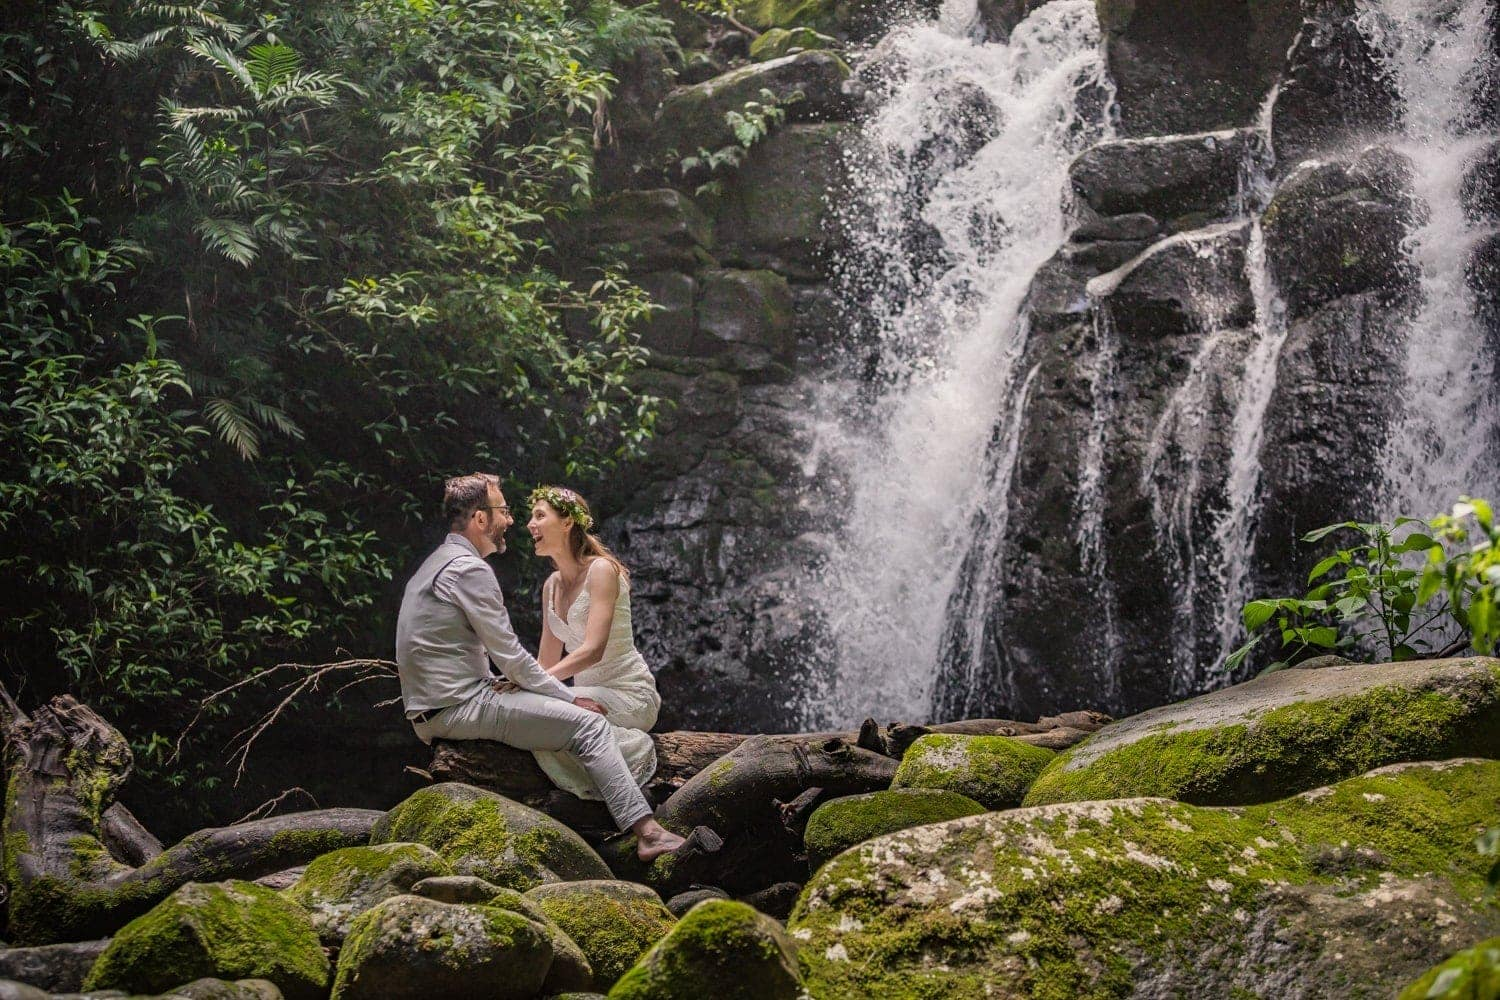 Kassie-Logan-waterfall-wedding-Costa-Rica-4.jpg